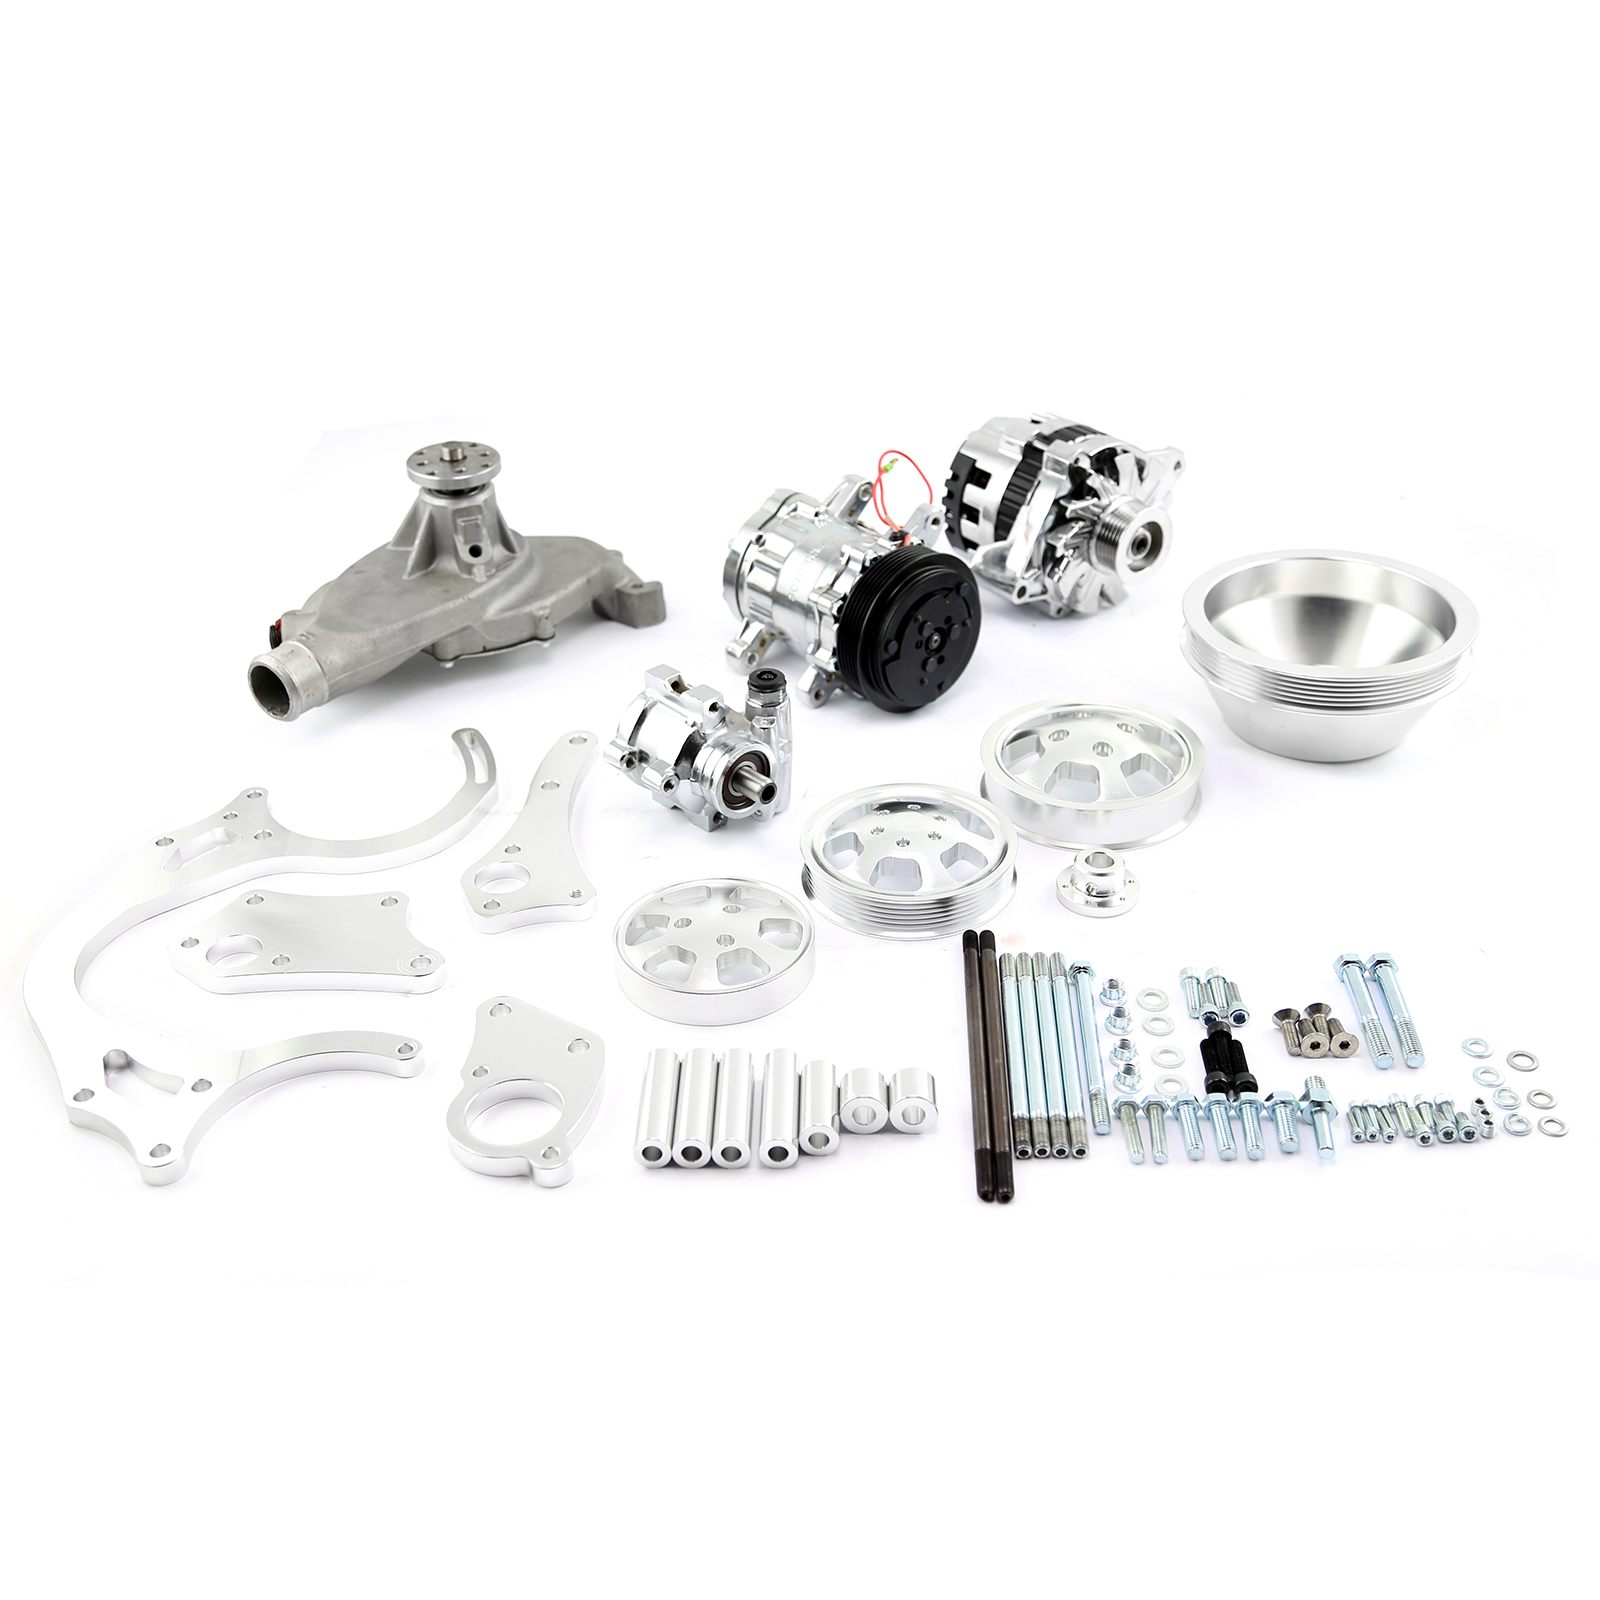 Serpentine Belt Pulley Groove Dimensions : Chevy bbc aluminum serpentine complete engine pulley components kit